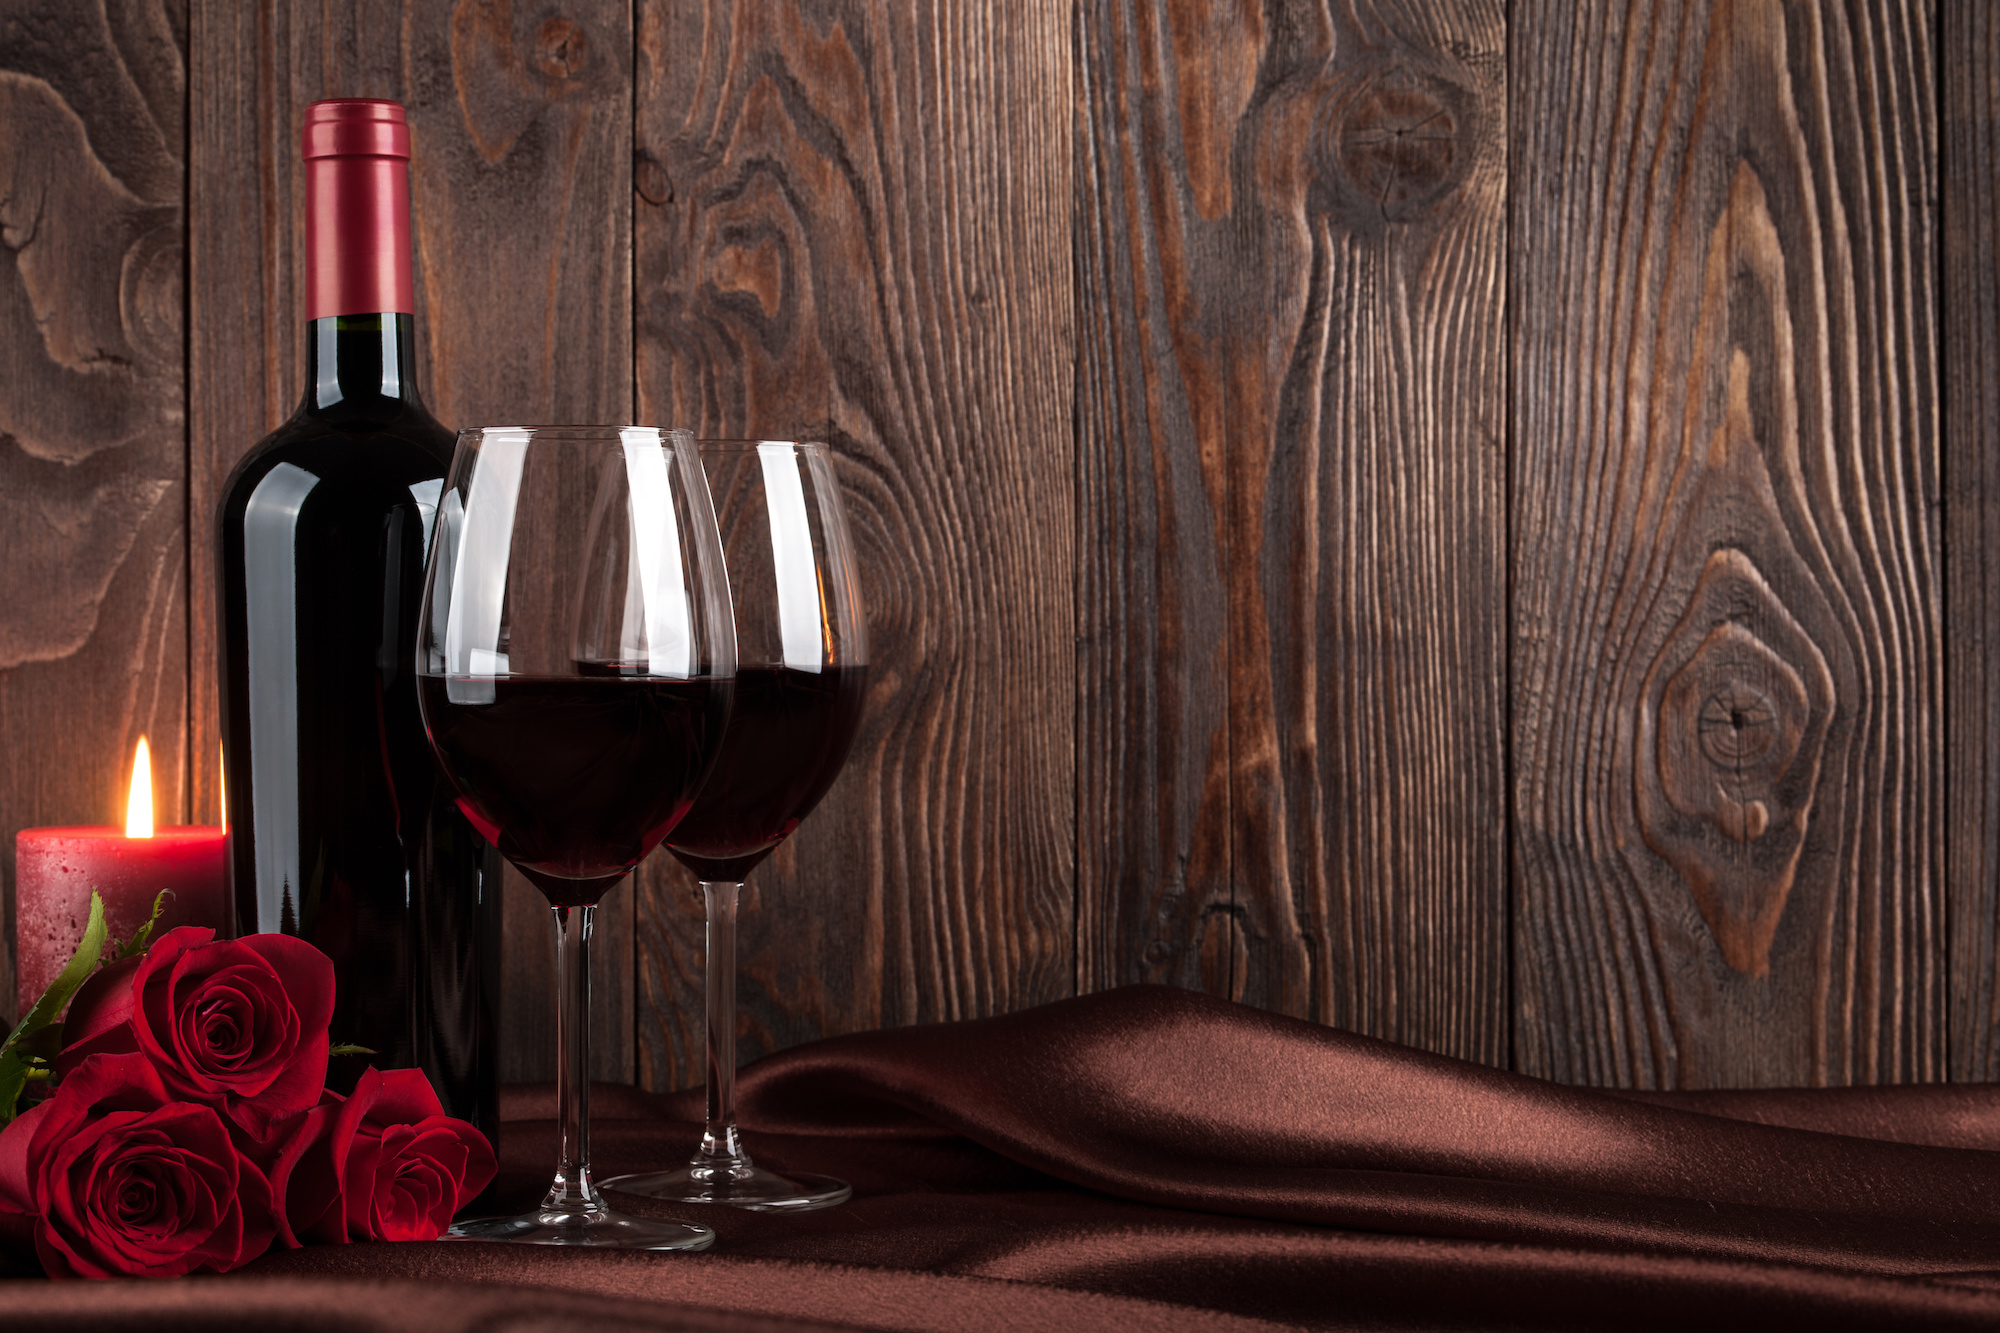 Red wine bottle, two glasses of wine, candle and red roses on brown silk